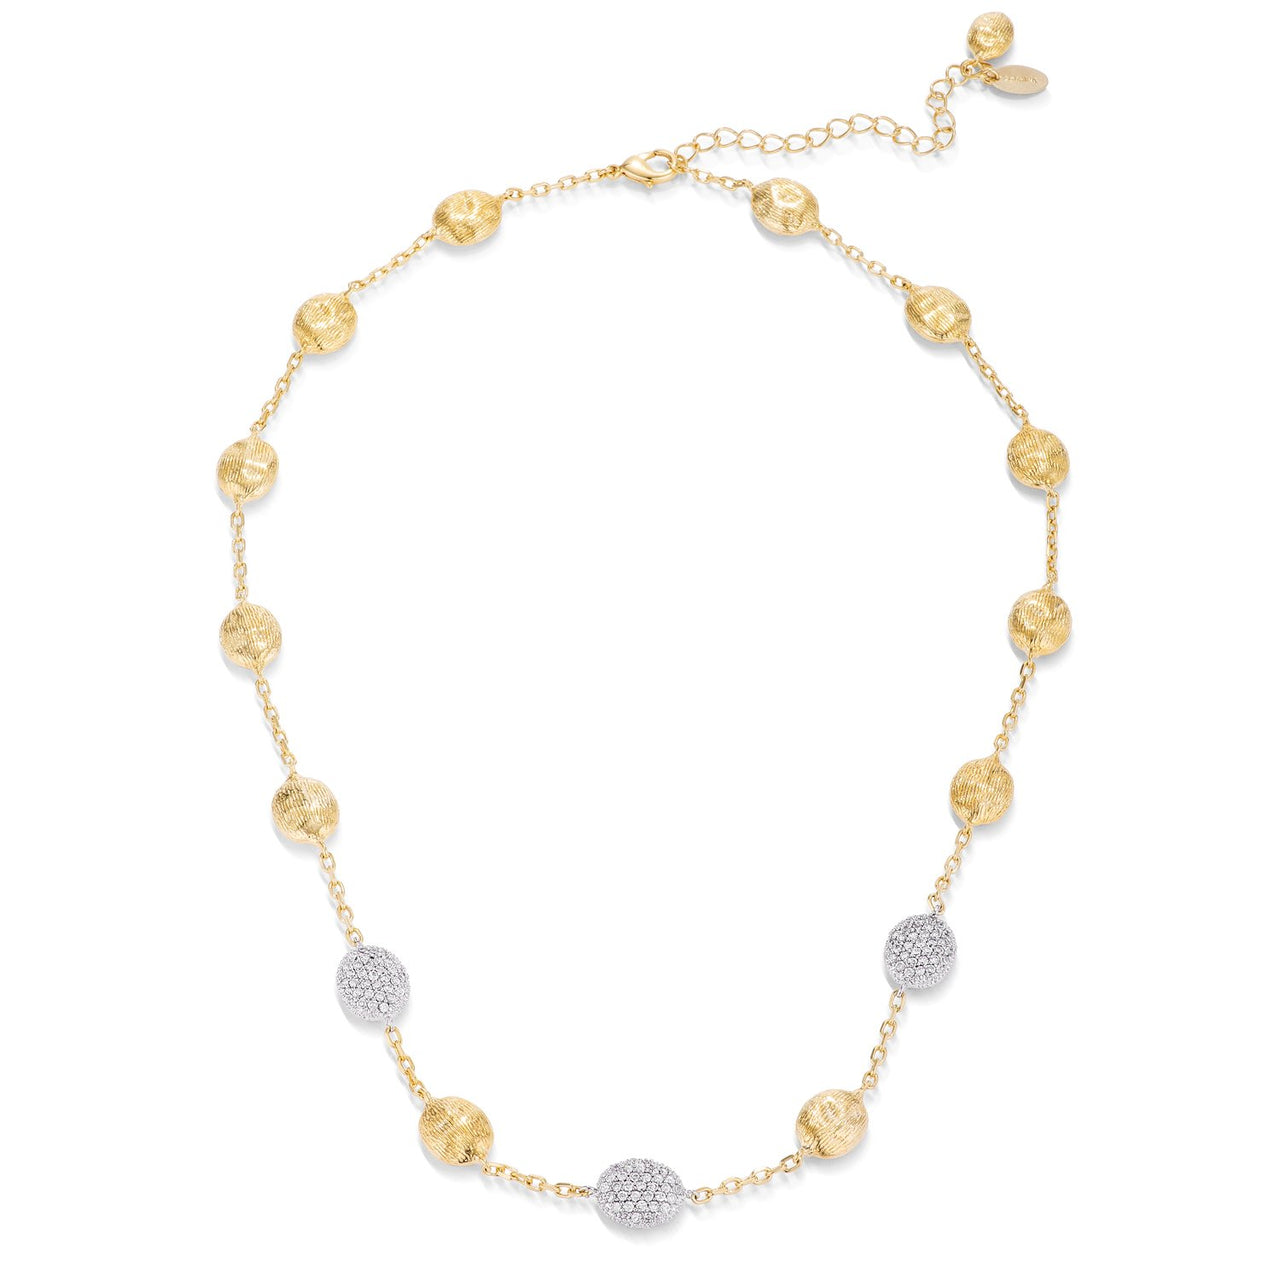 .1Ct Contemporary 18k Gold and Rhodium Plated CZ Textured Necklace - Necklaces - KA Designs Online